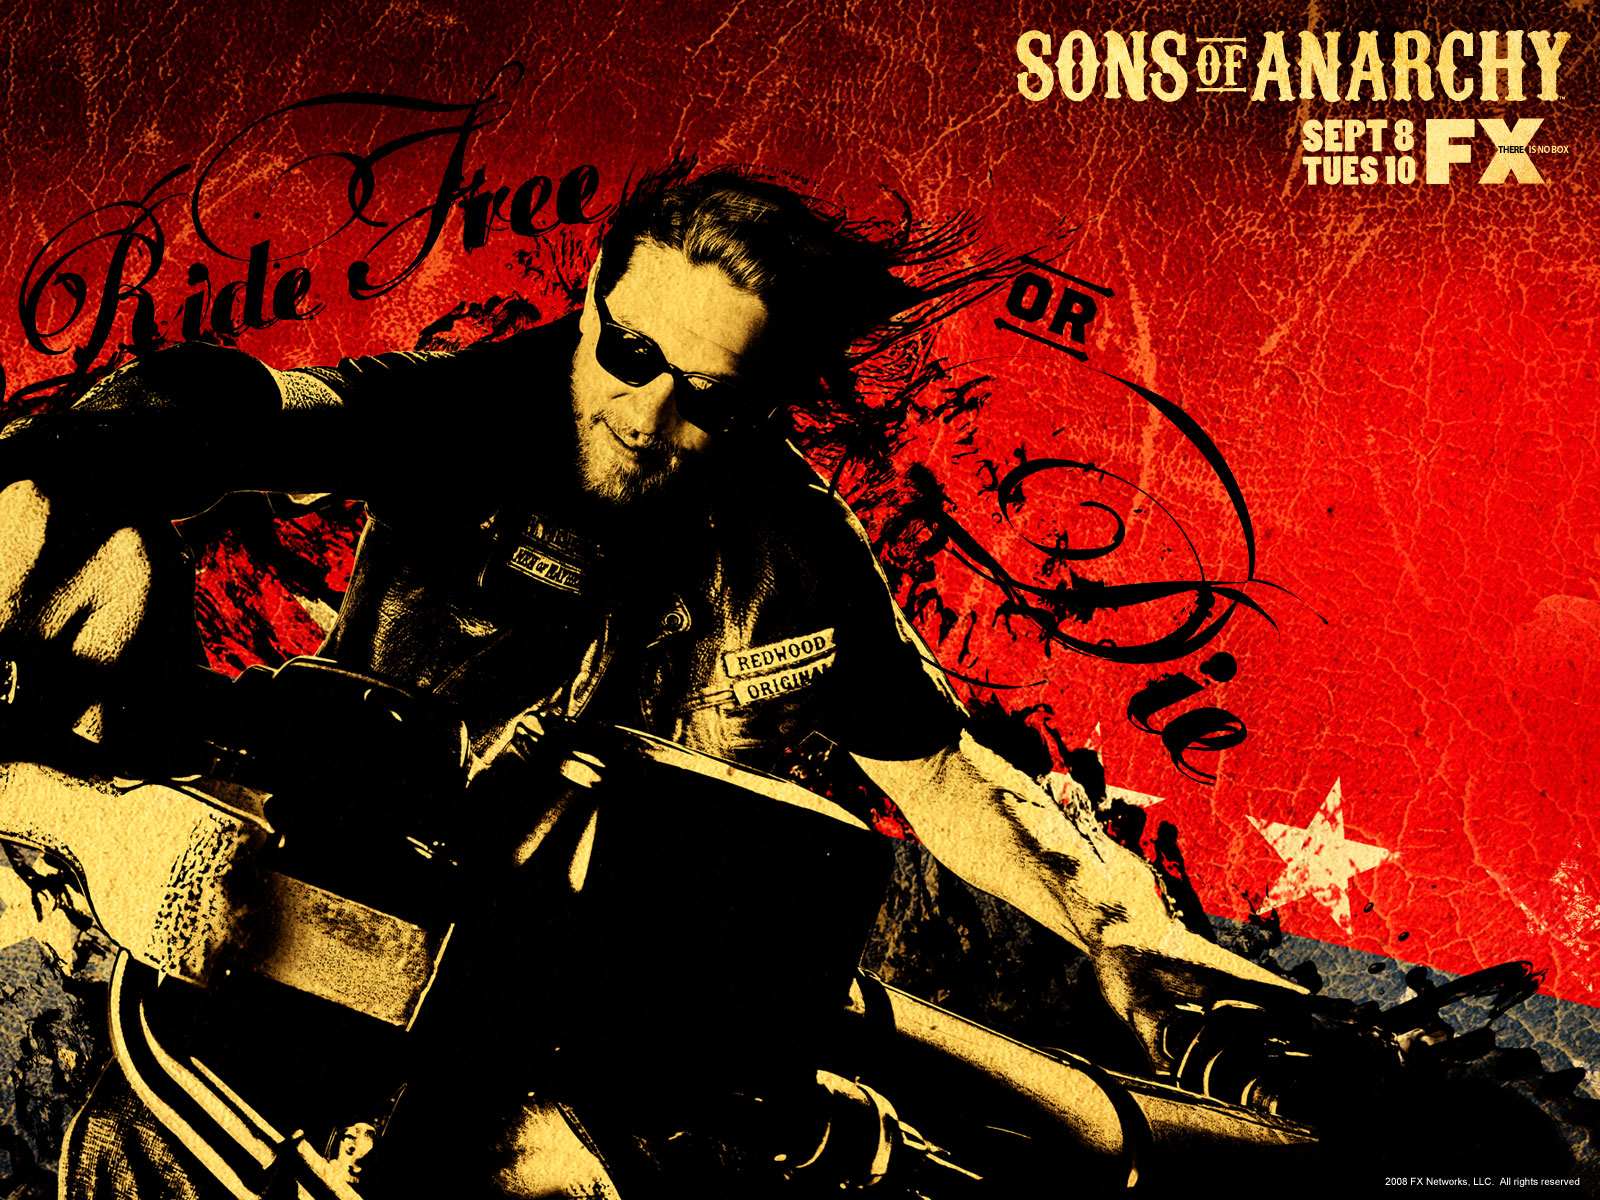 Sons of anarchy wallpaper and background image 1600x1200 id440334 tv show sons of anarchy sons of anarchy wallpaper voltagebd Choice Image